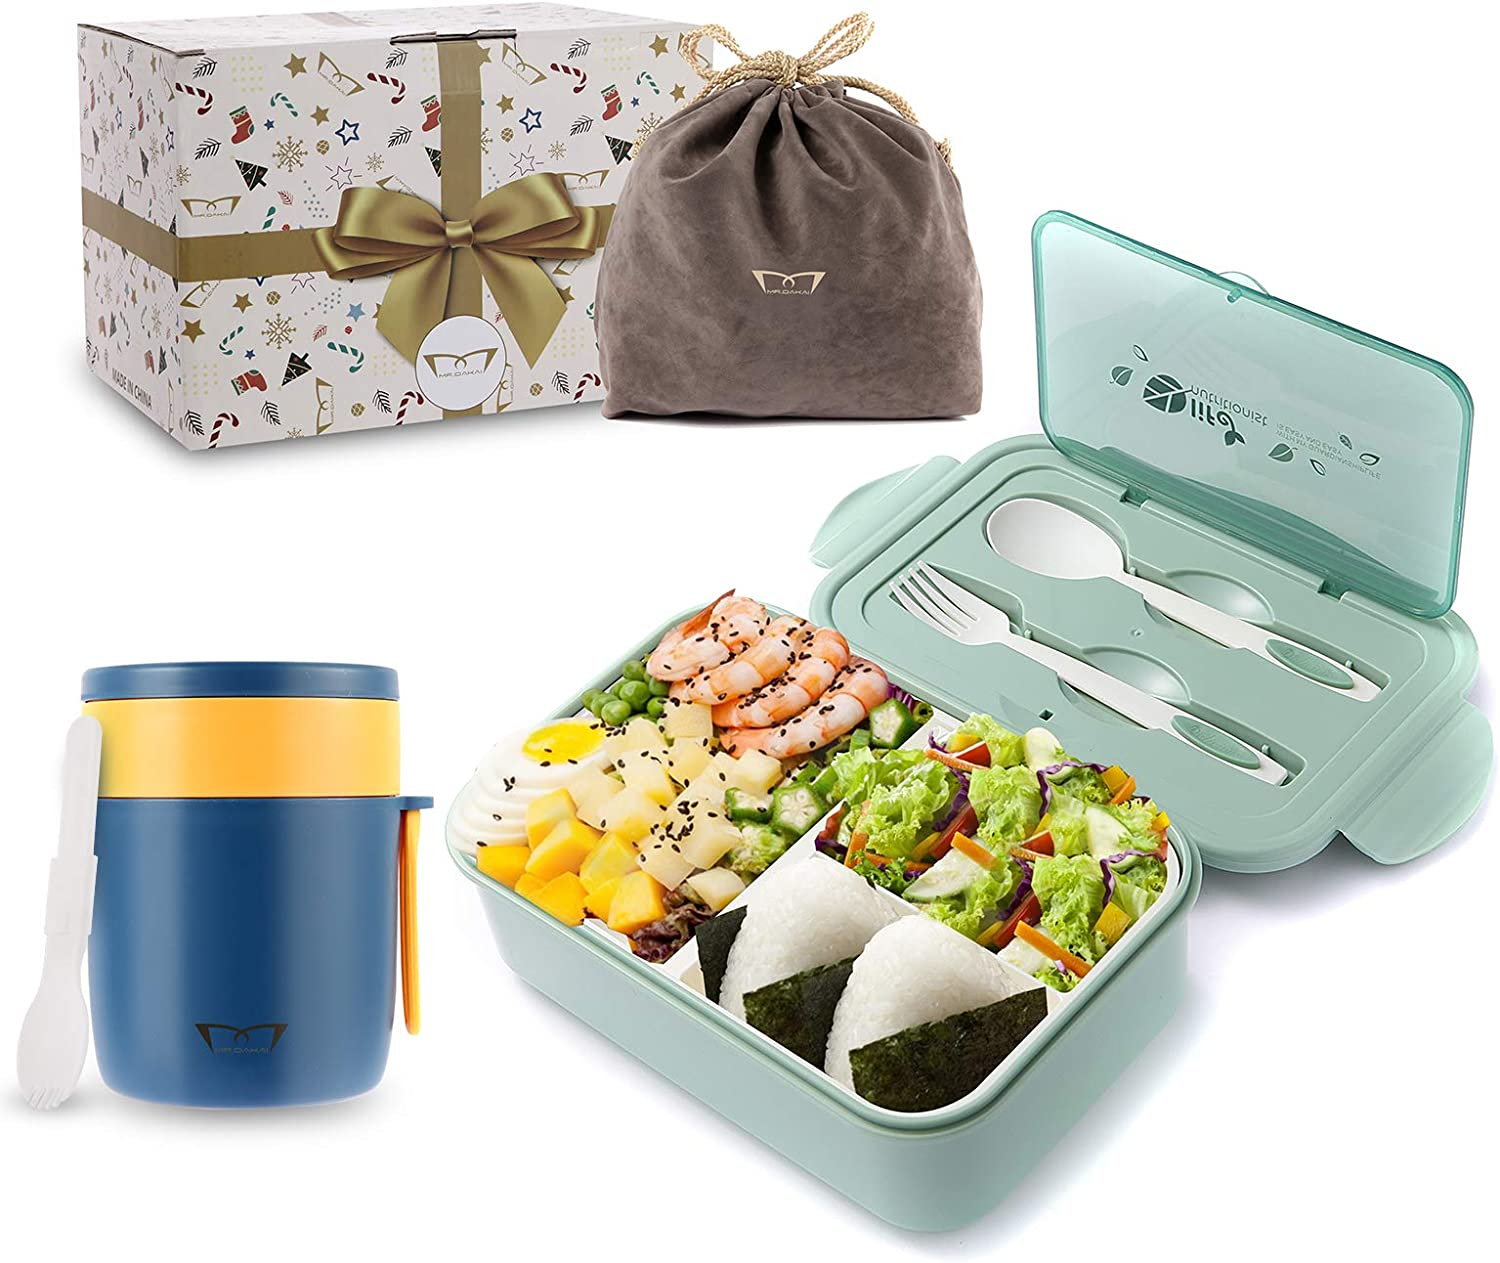 Mr.Dakai Bento Boxes Adult Kids Lunch Box with Hot Food Jar Soup Containers, Microwave Safe 3 Compartment Meal Prep Containers with Lunch Bag & Utensils, Leakproof Food Storage Set (Green & Blue)